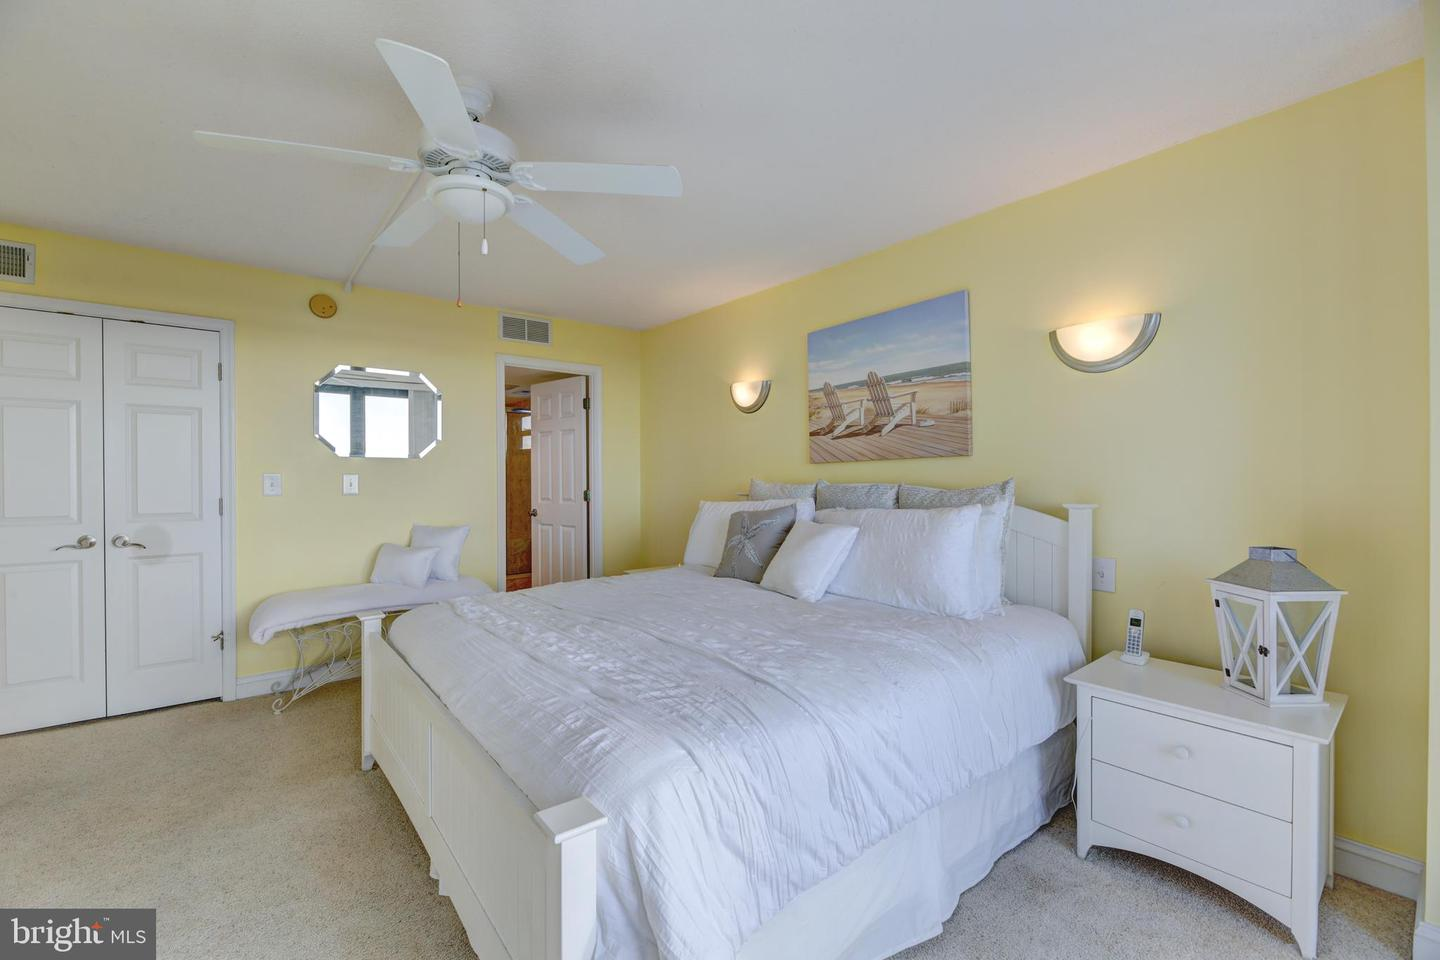 DESU152792-302186529257-2019-12-16-14-23-17 1206 S Edgewater House Rd #1206s | Bethany Beach, De Real Estate For Sale | MLS# Desu152792  - Suzanne Macnab